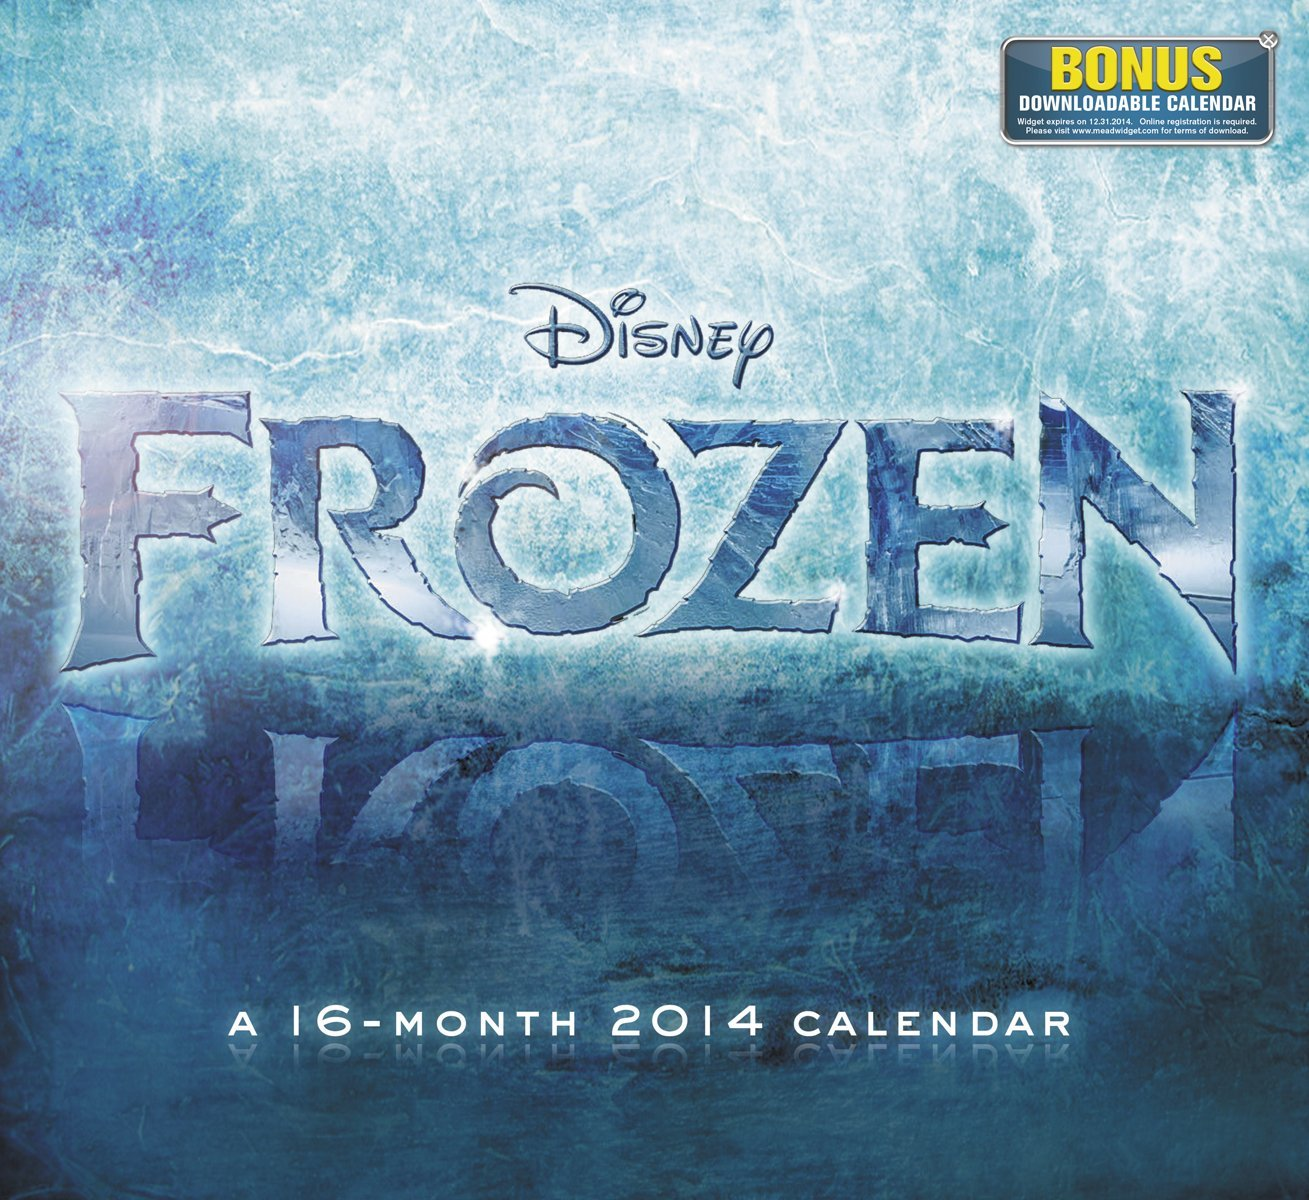 Frozen Calendar   Disney Princess Photo 34466780 1309x1200